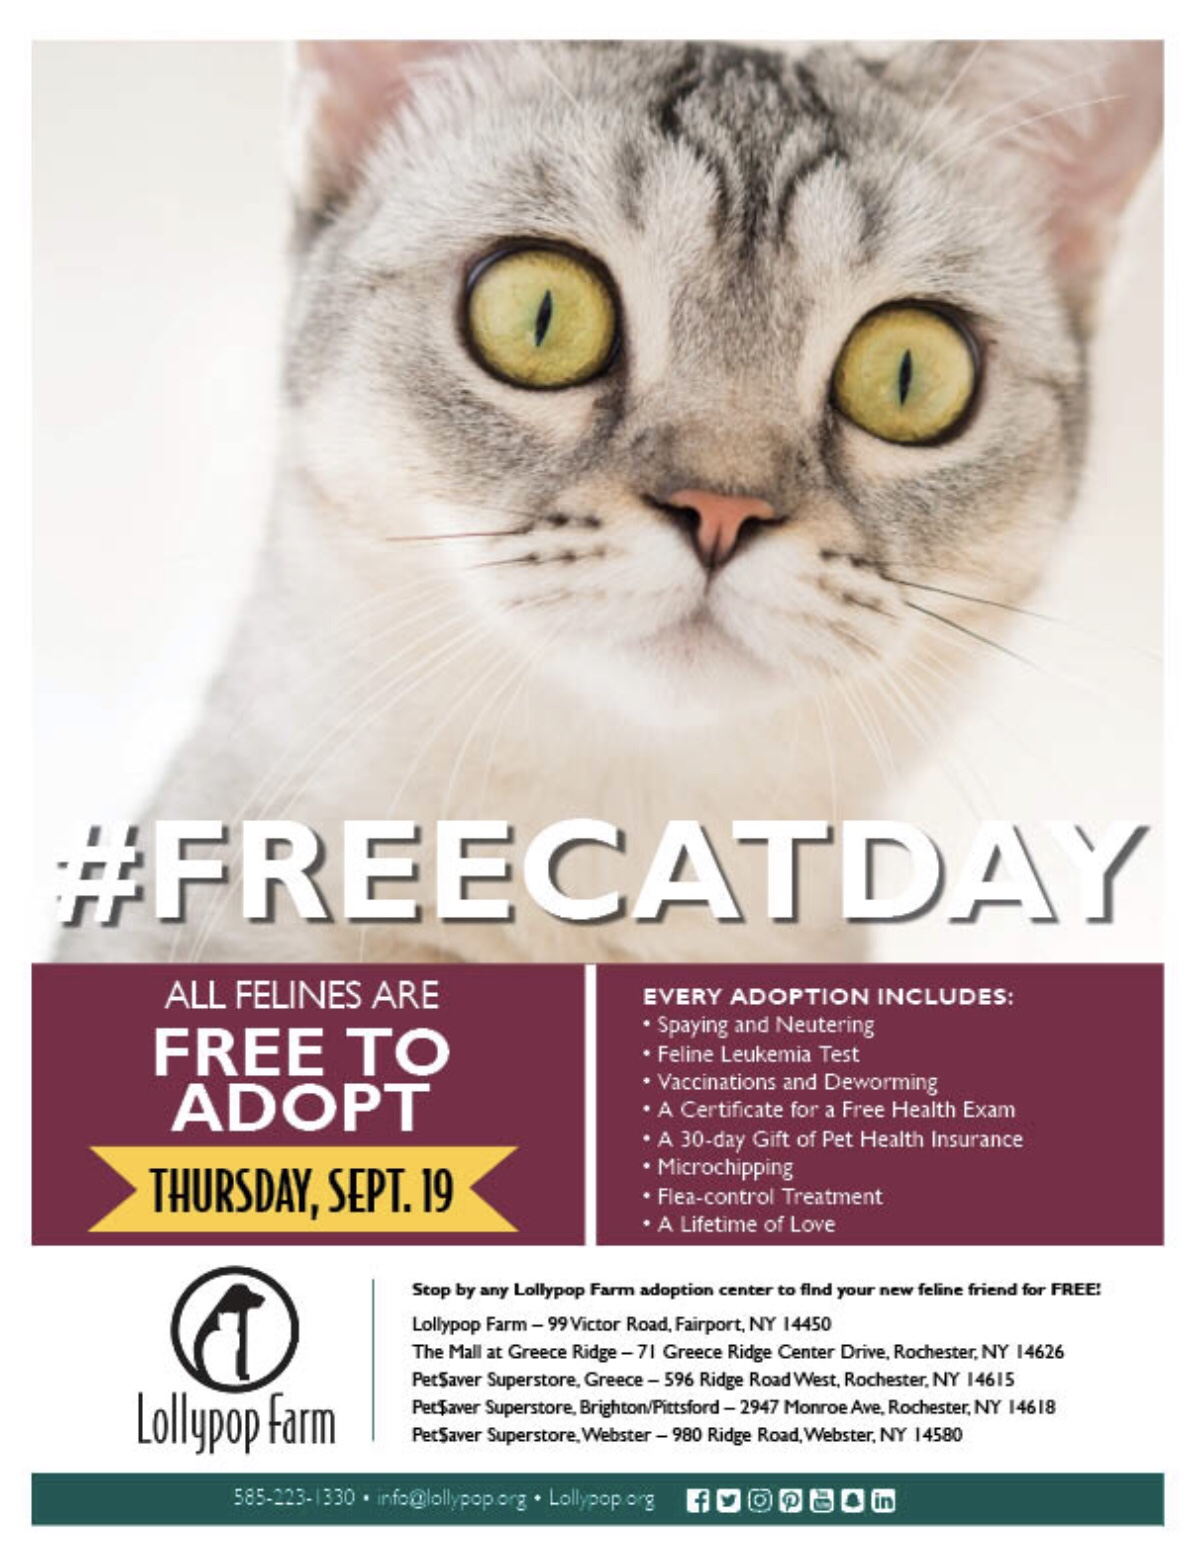 Free cat day poster for 9/19/19